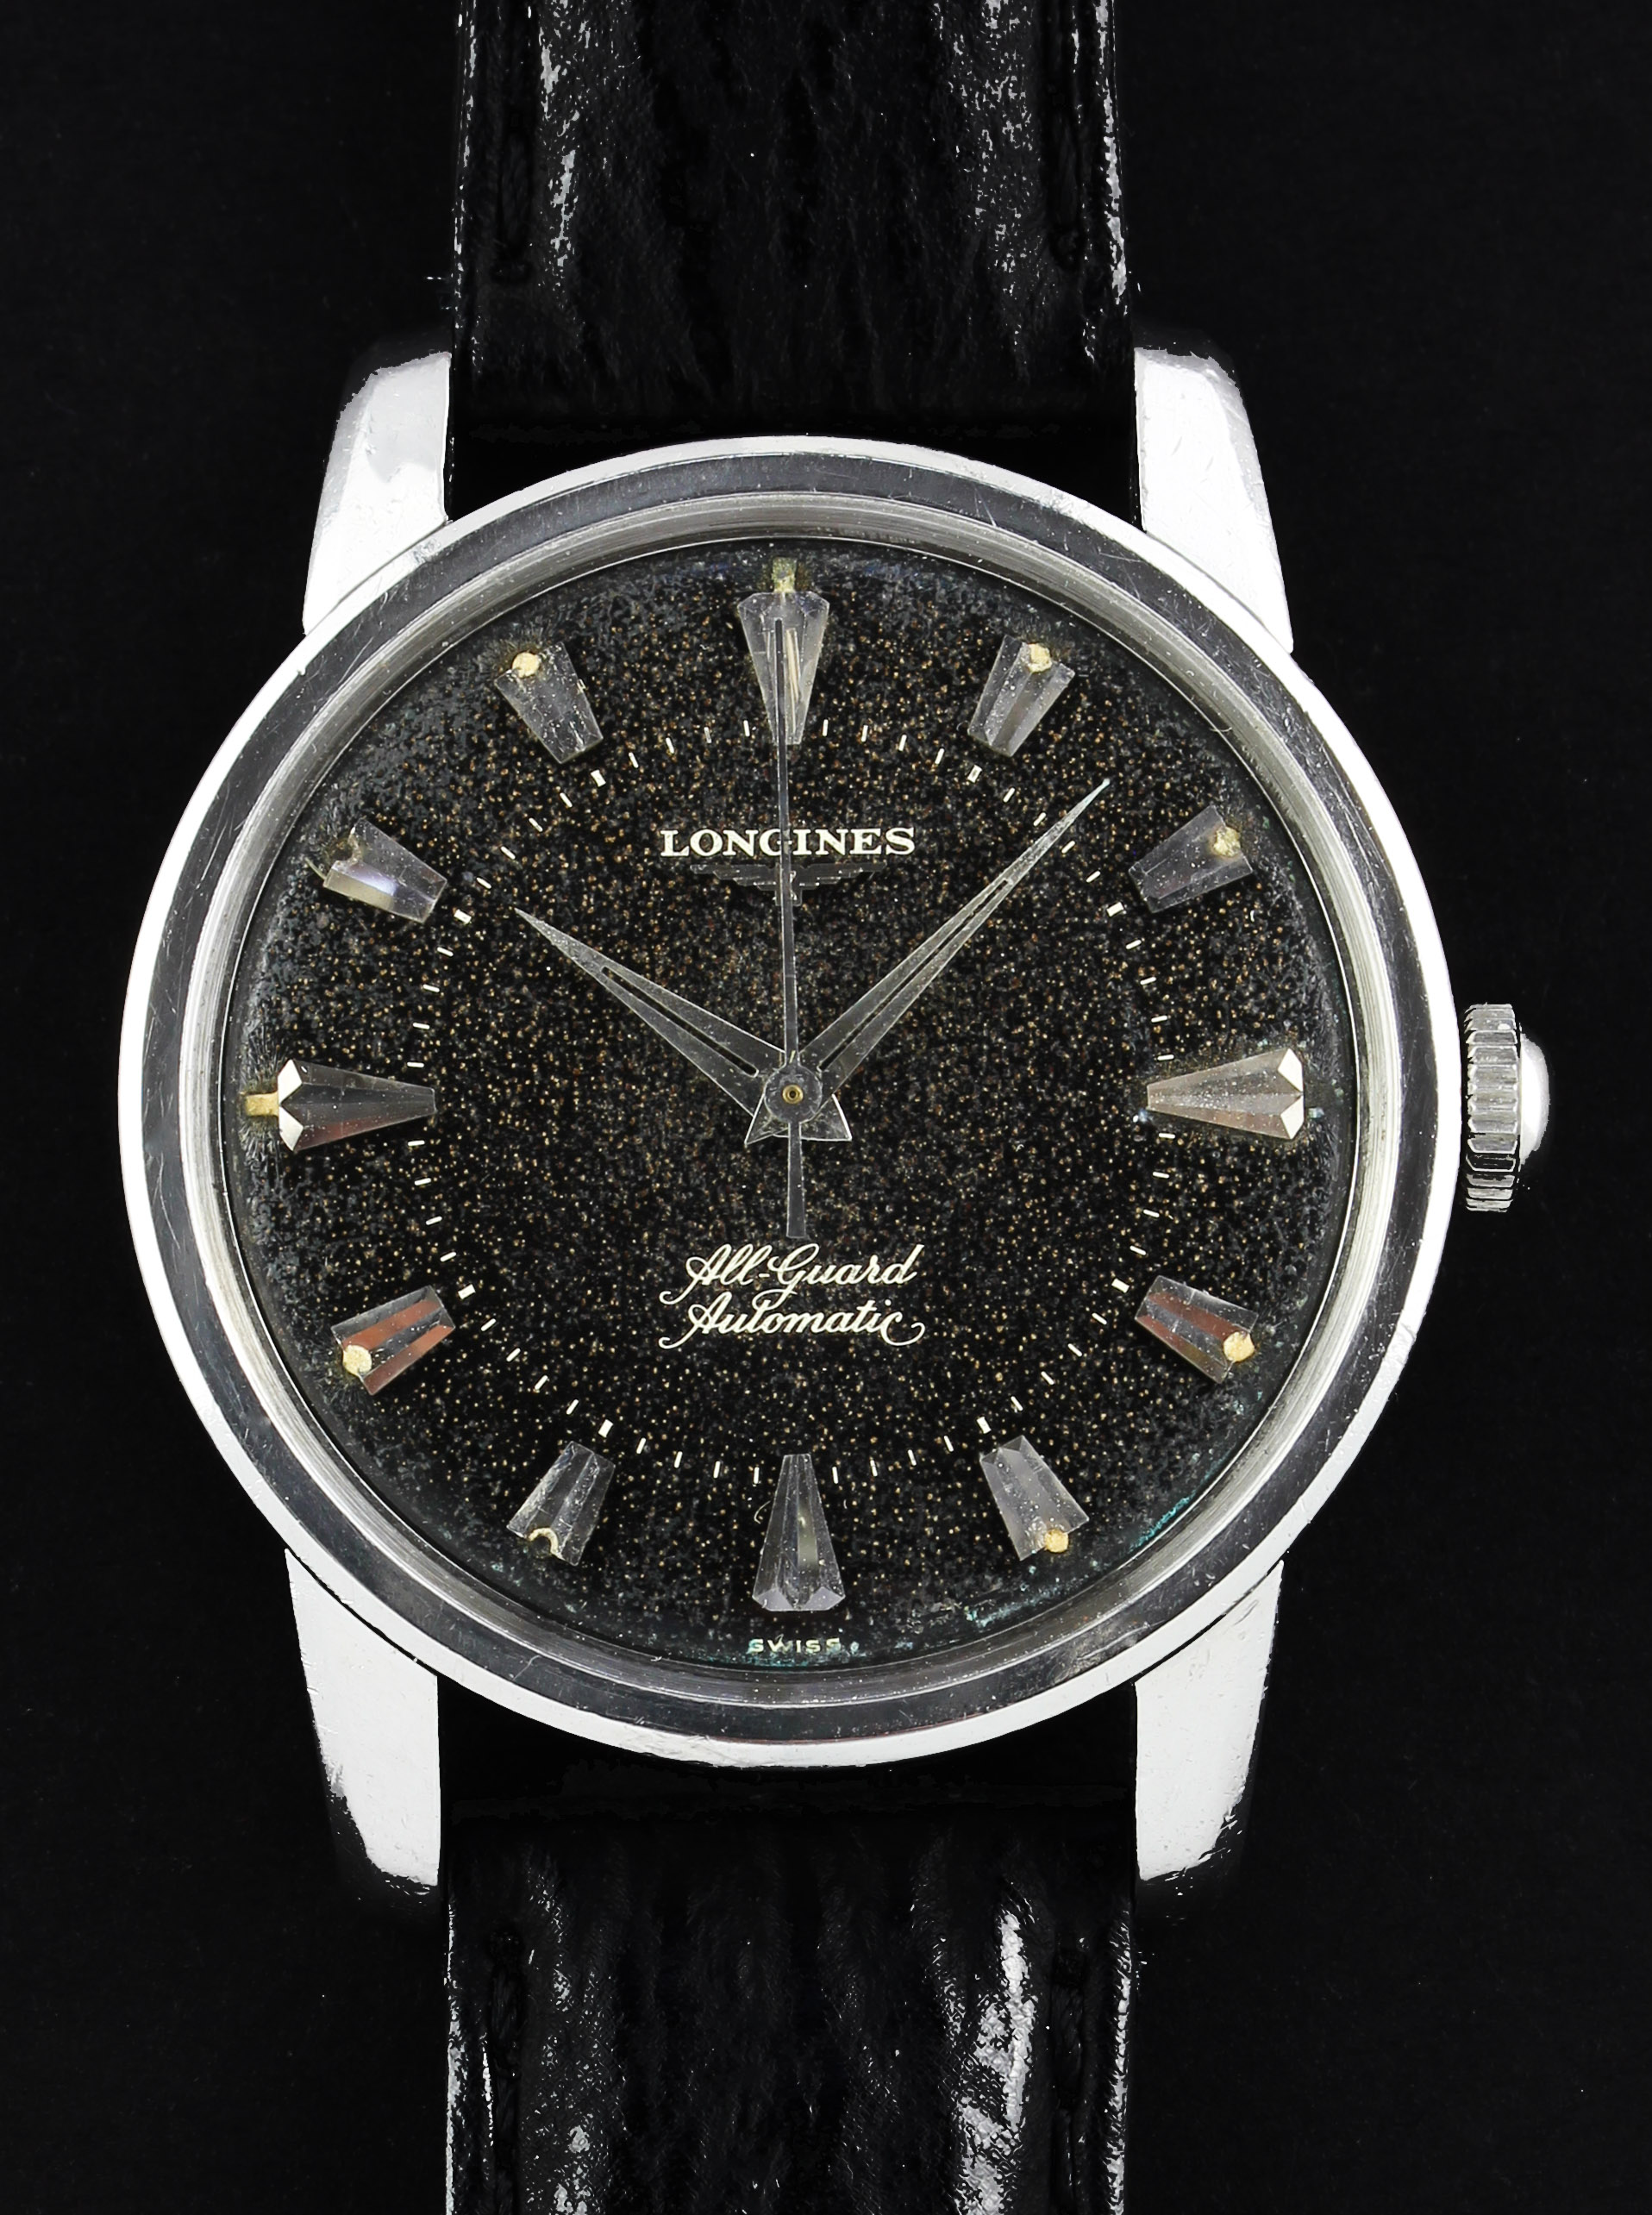 "LONGINES ""All Guard"" automatic"